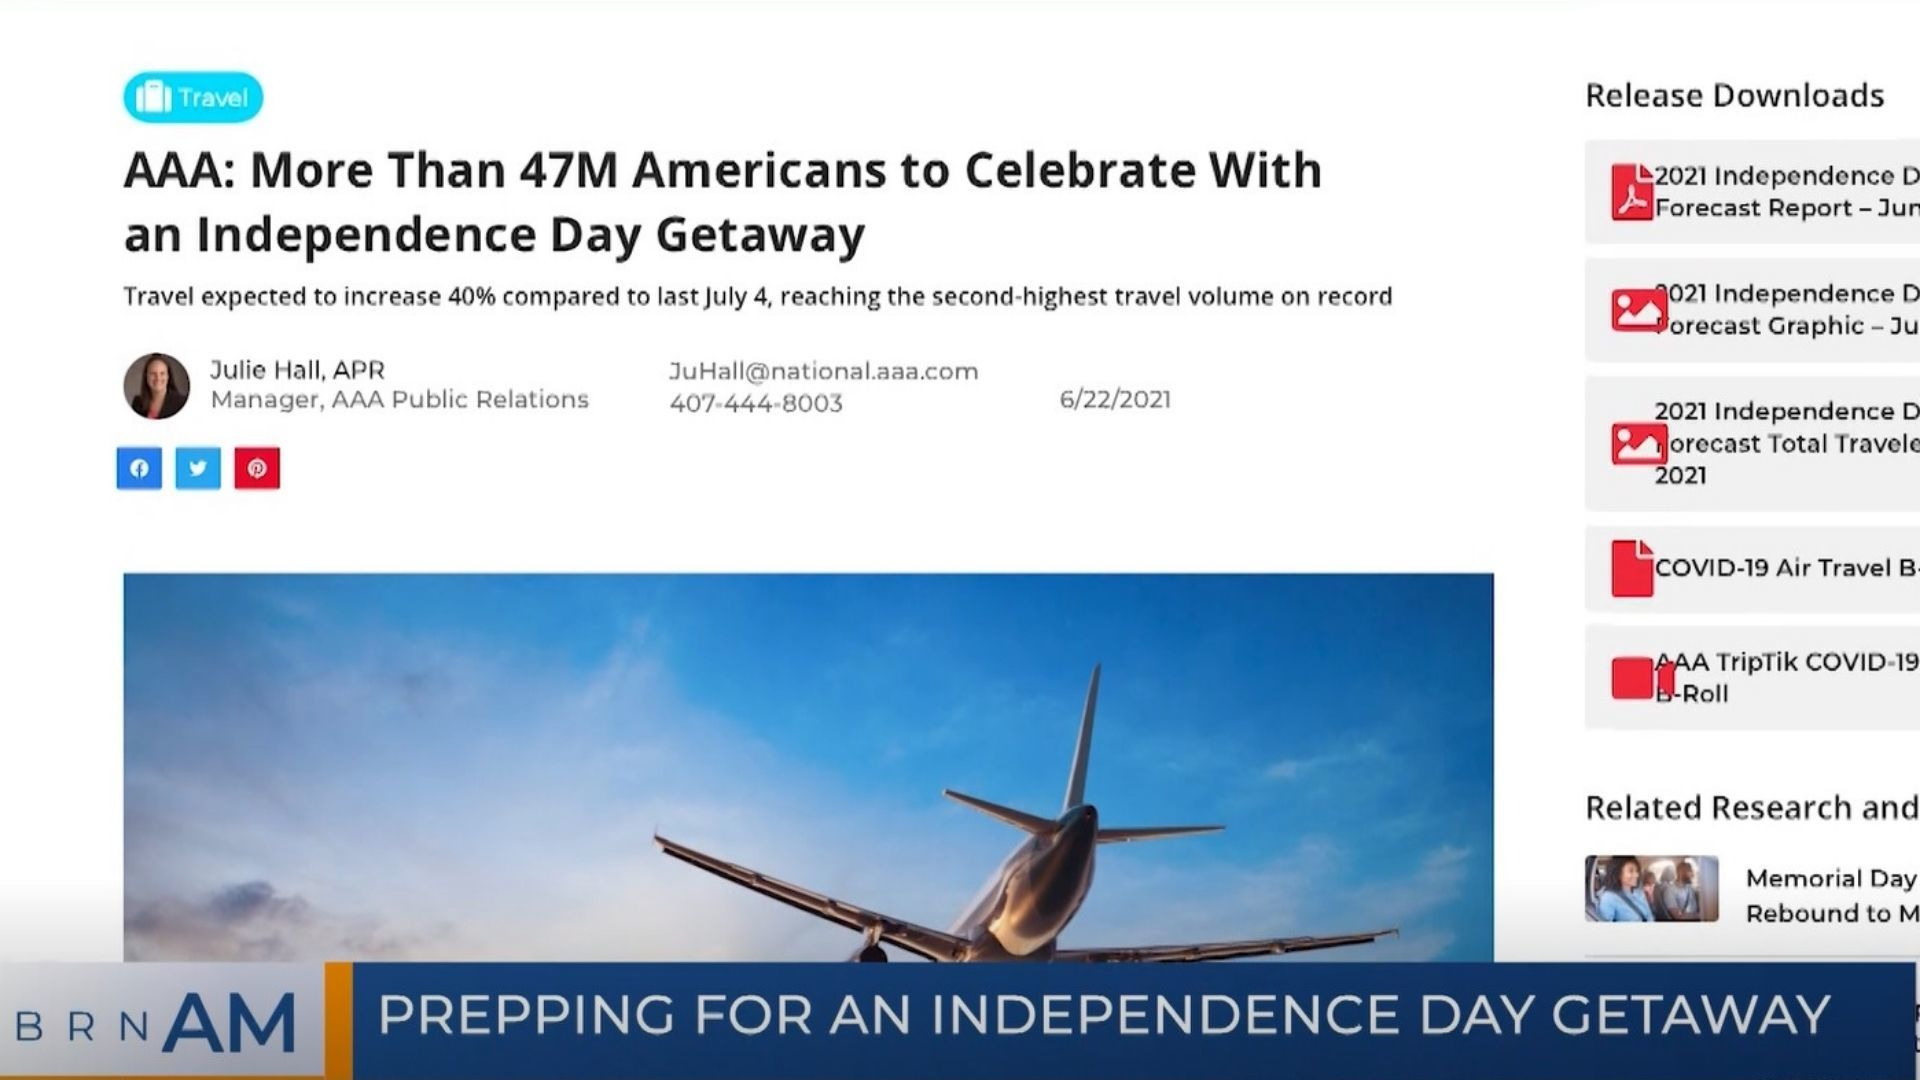 BRN AM | Prepping for an Independence Day Getaway